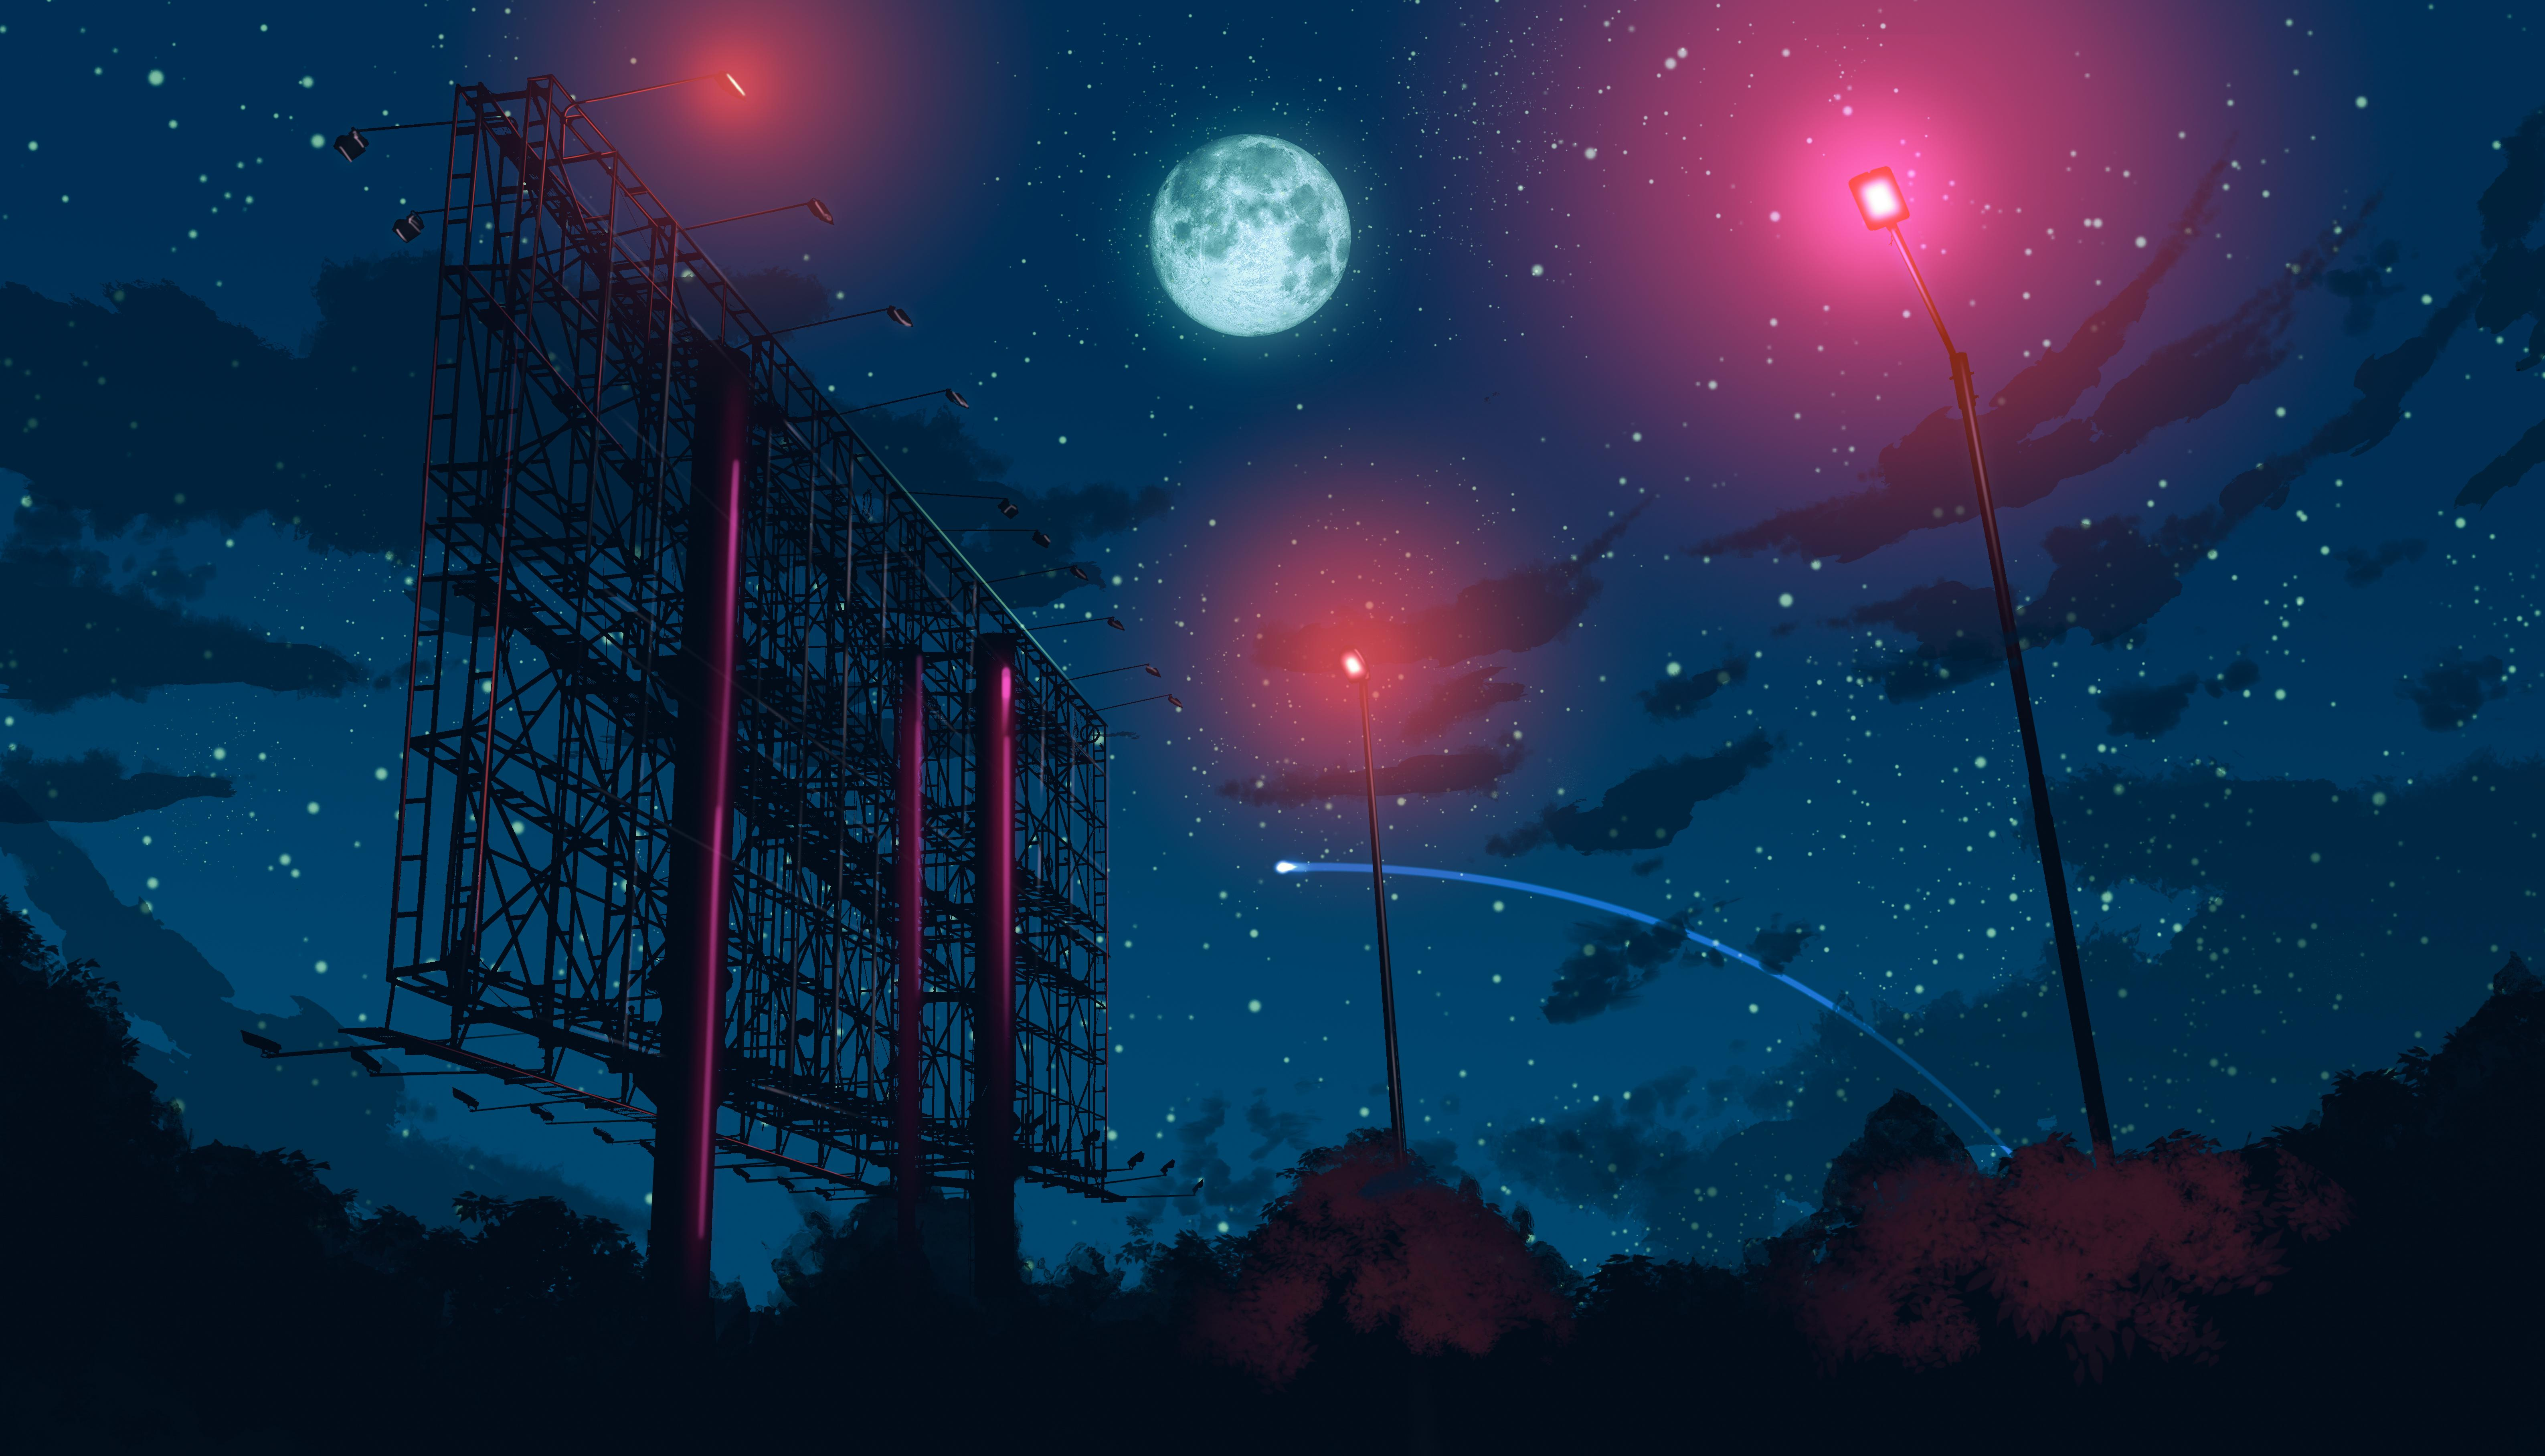 Night Sky Anime Wallpapers Top Free Night Sky Anime Backgrounds Wallpaperaccess